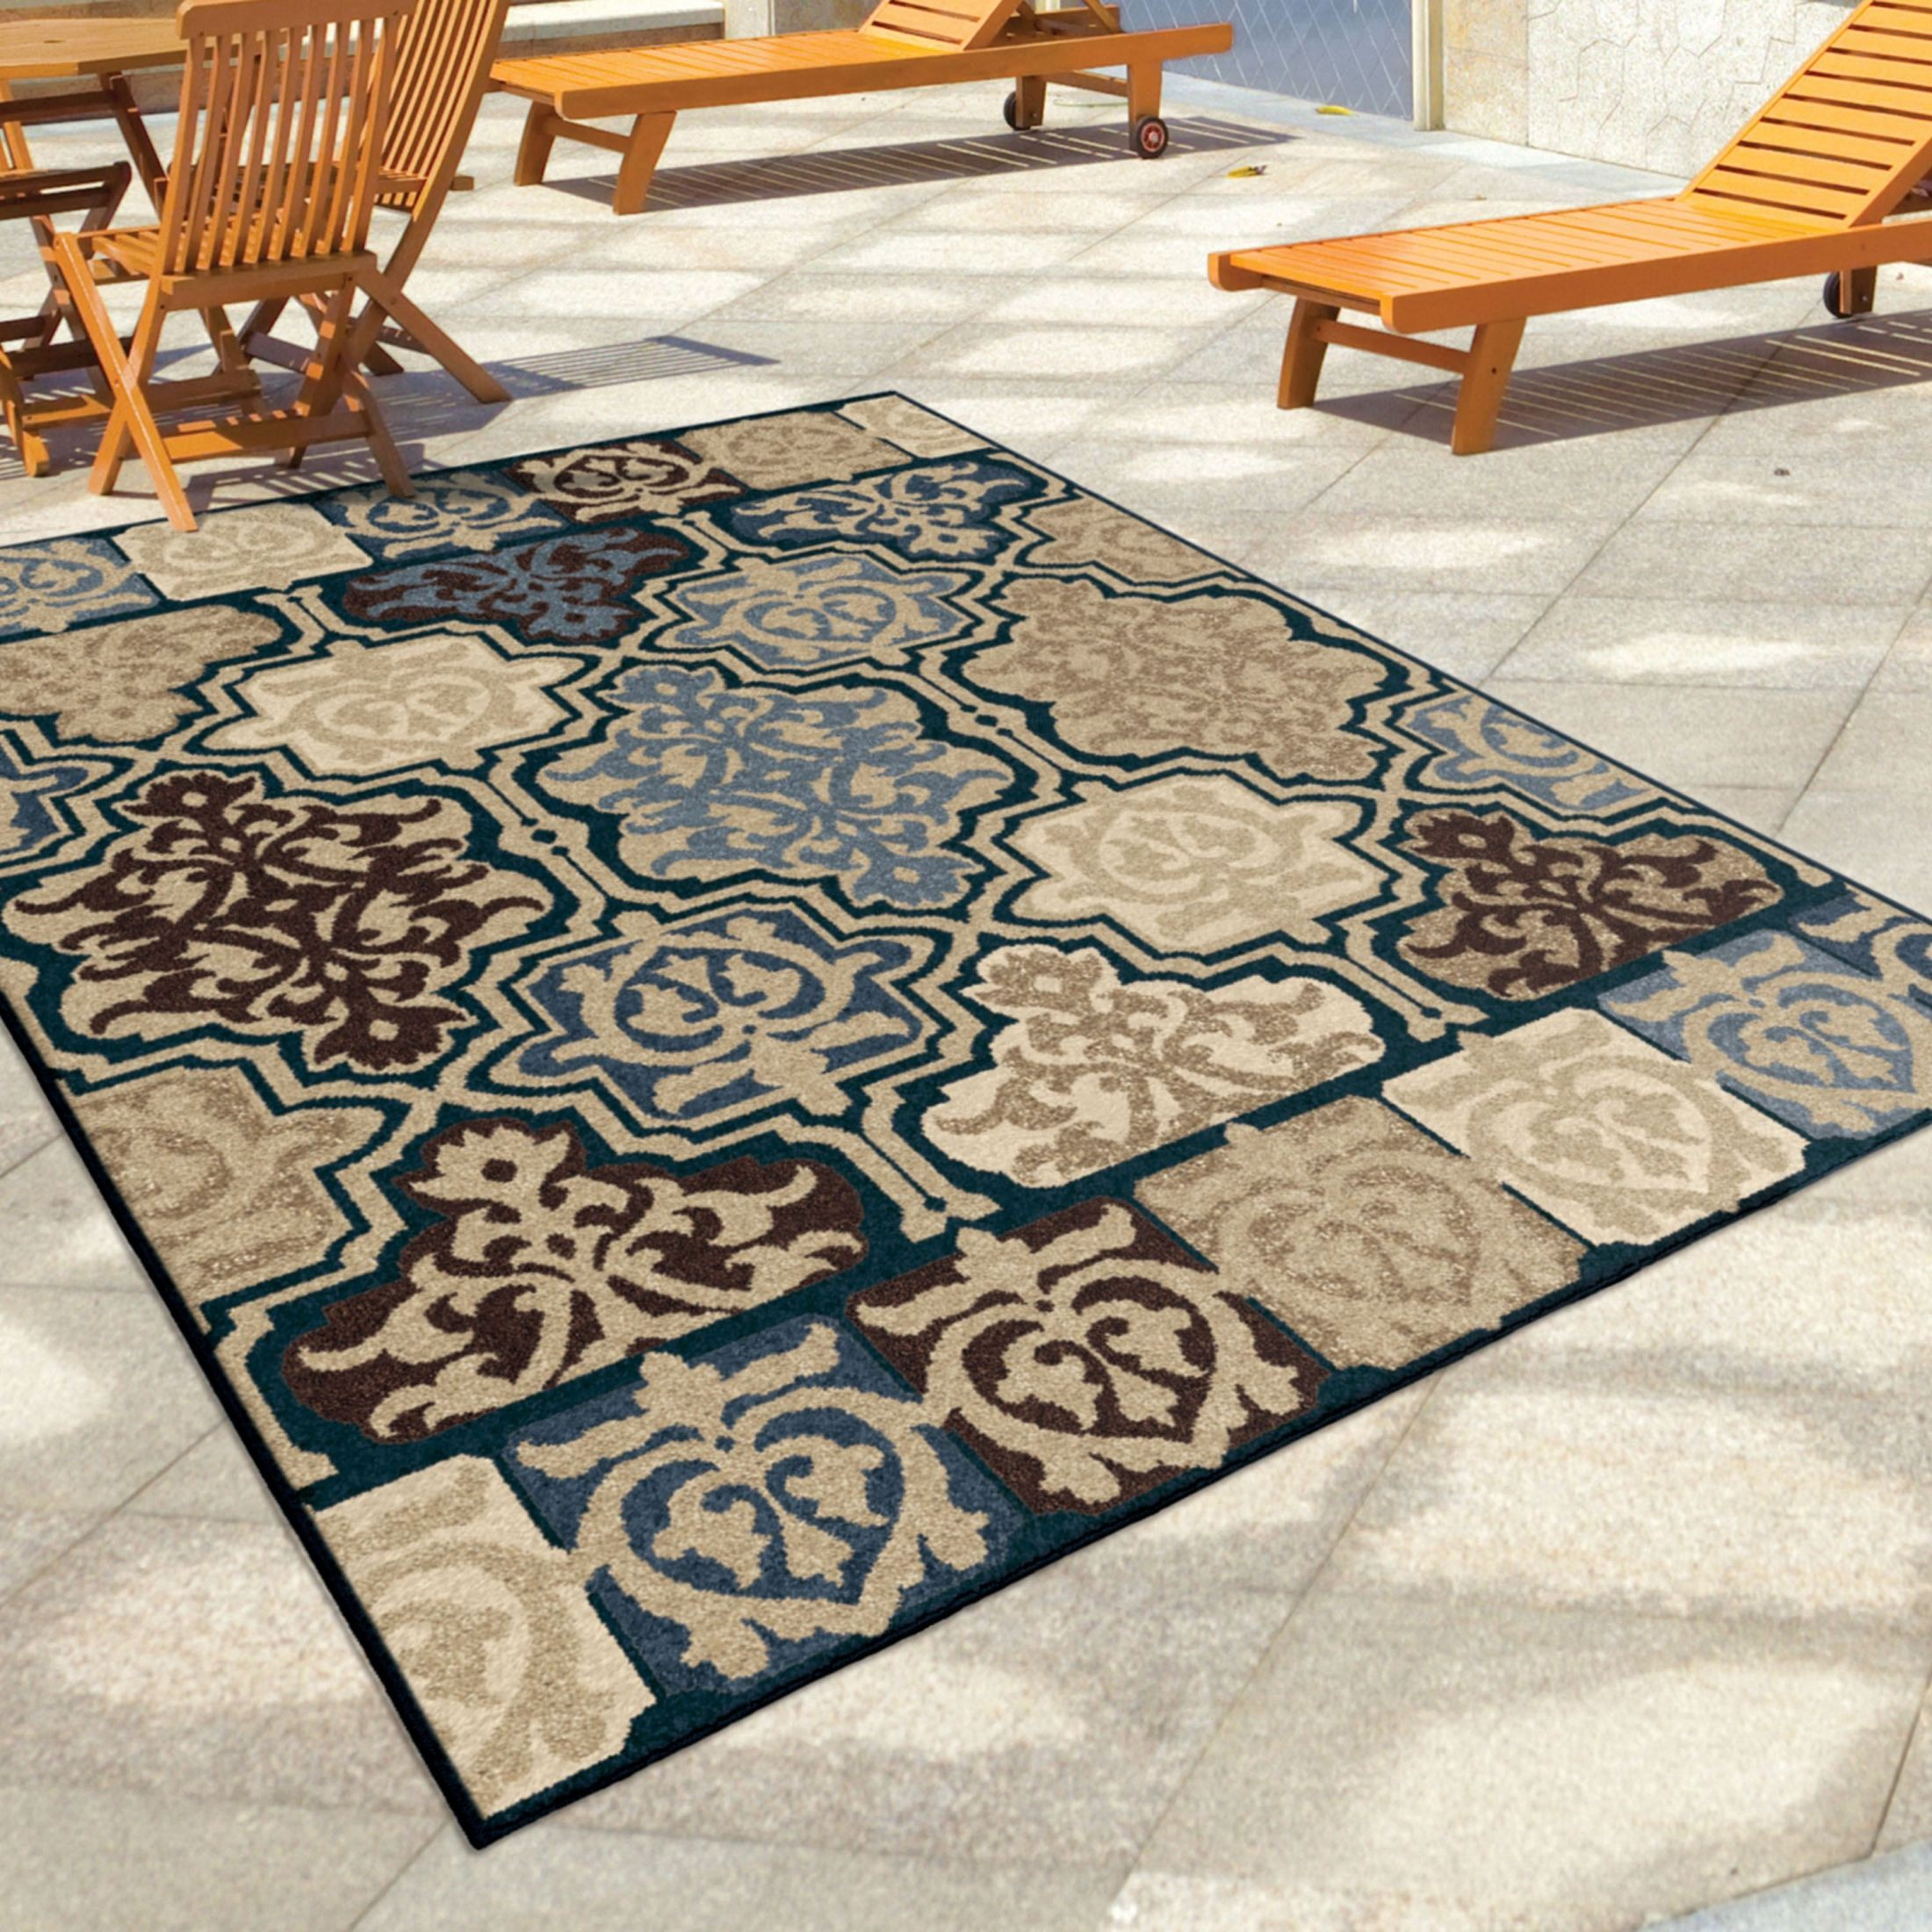 Discount 8x11 Area Rugs: Four Seasons Indoor/Outdoor Geometric Yandell Multi Small